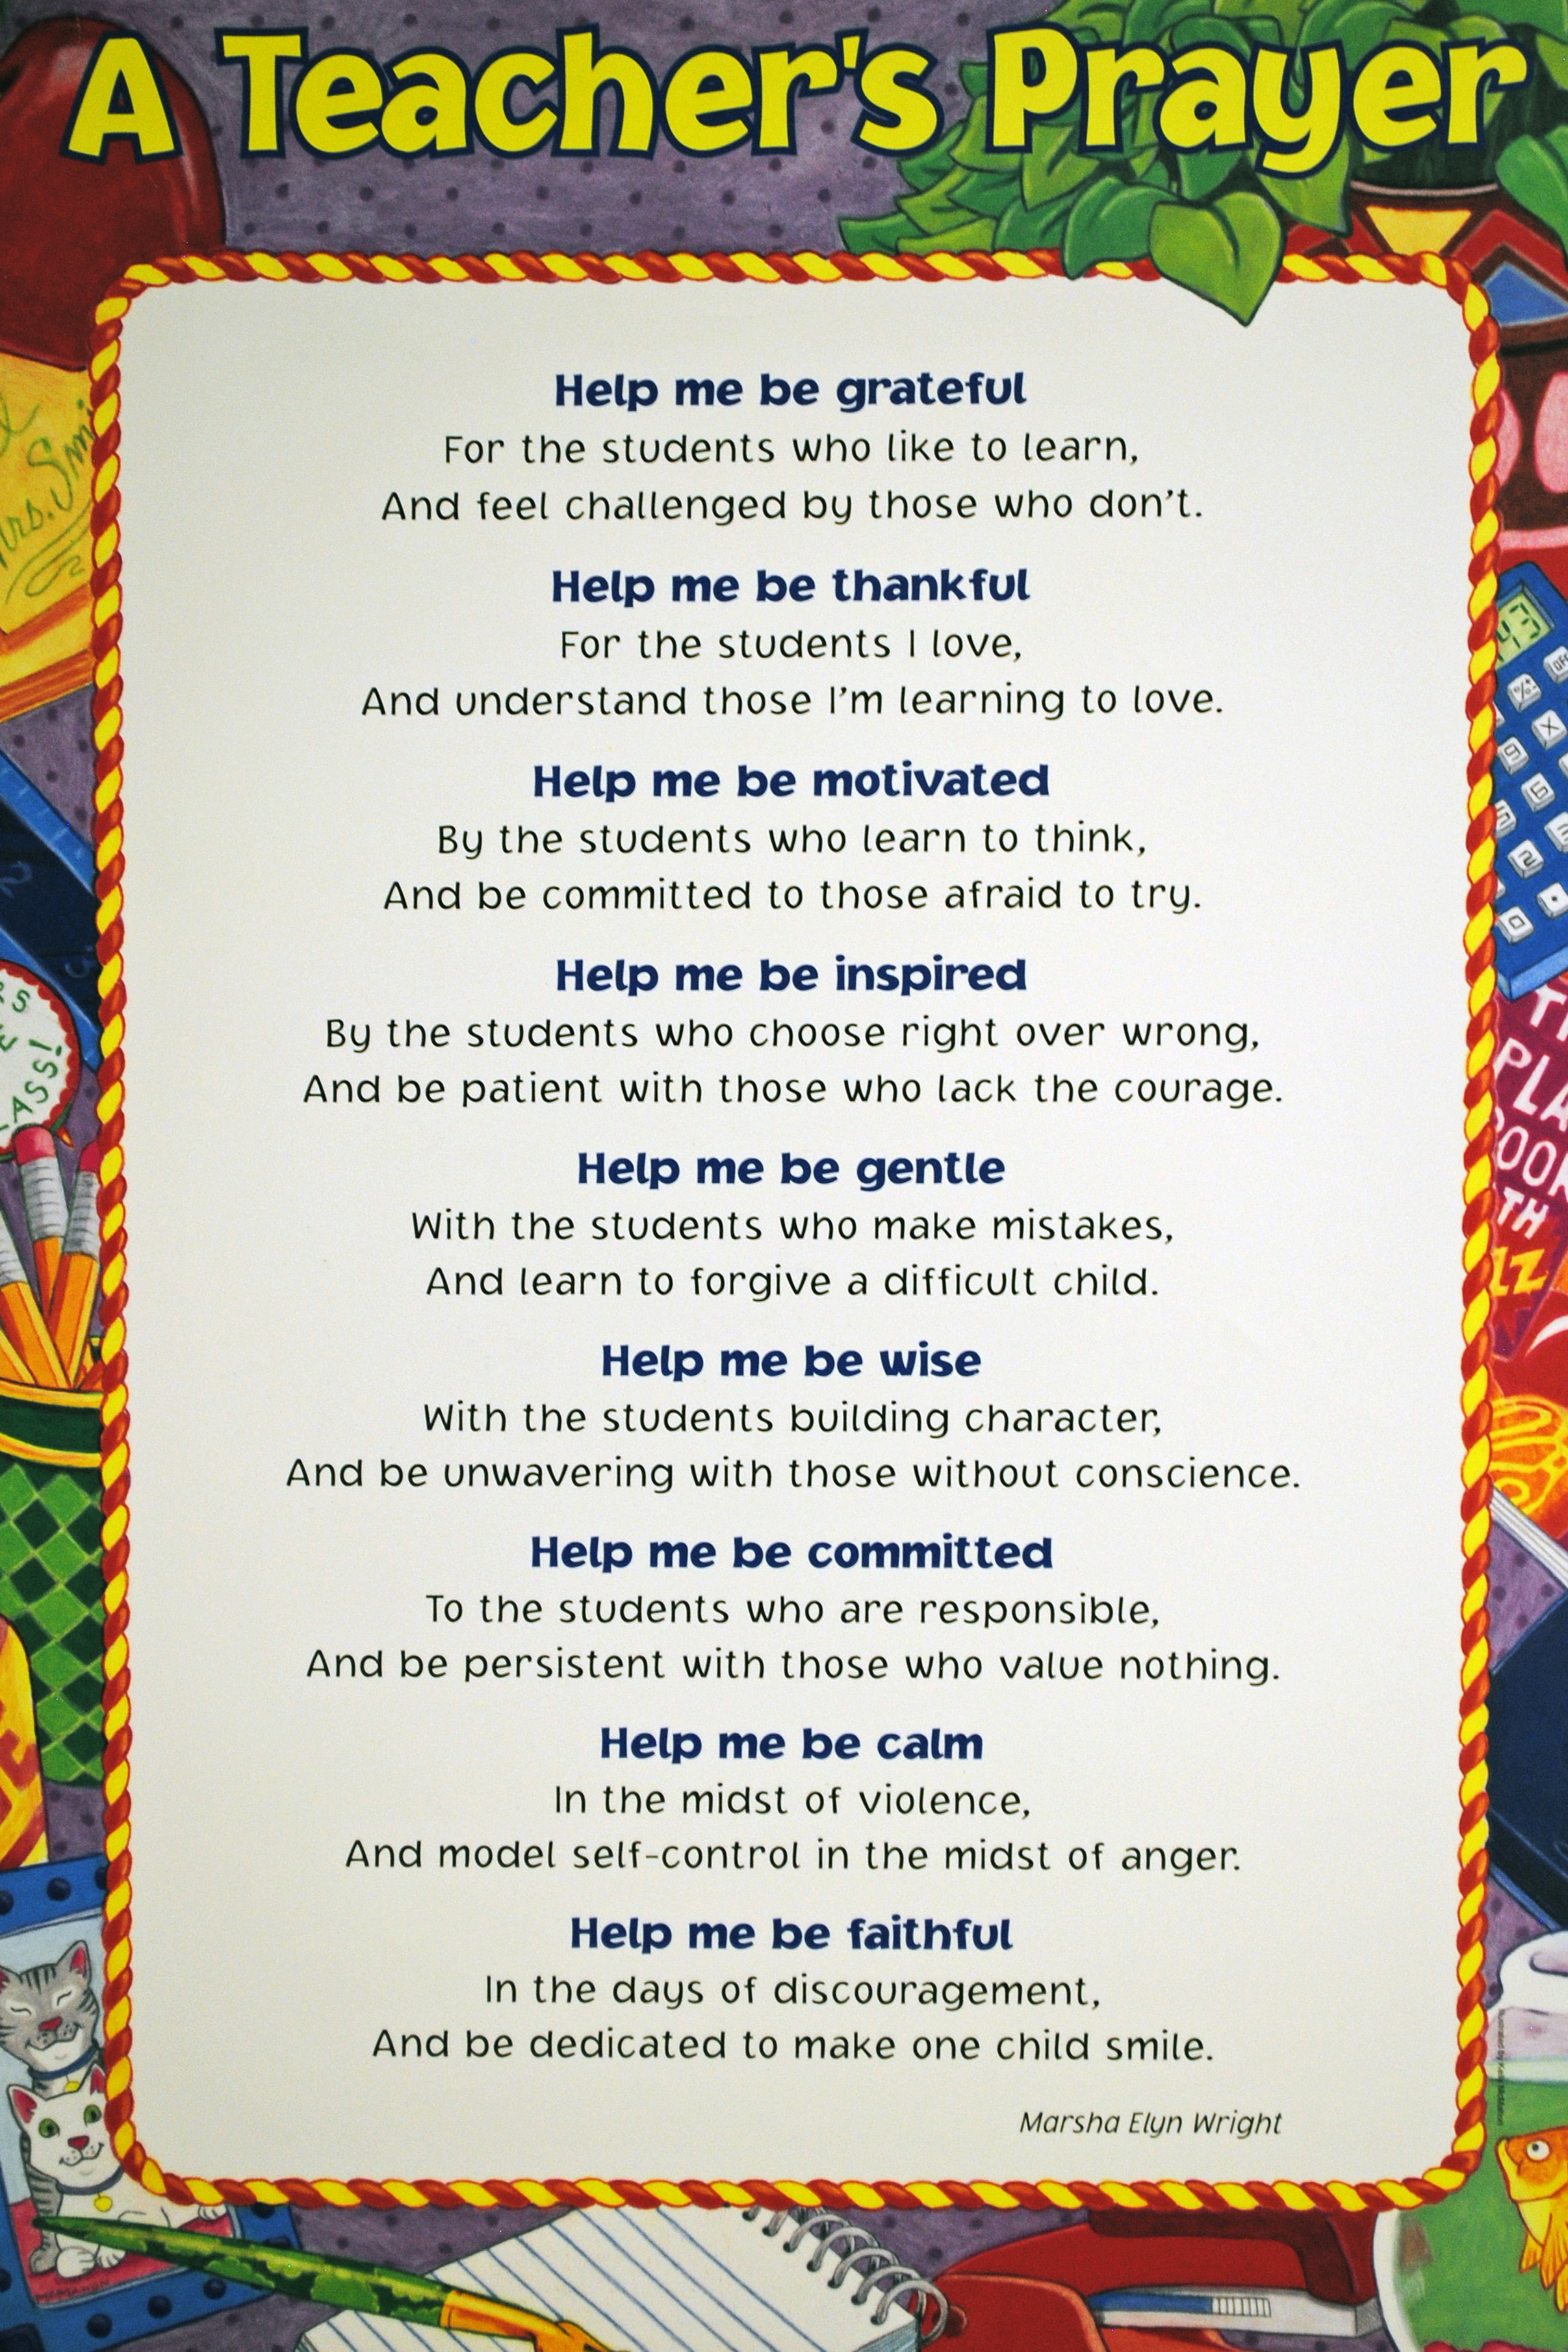 A TEACHER'S PRAYER